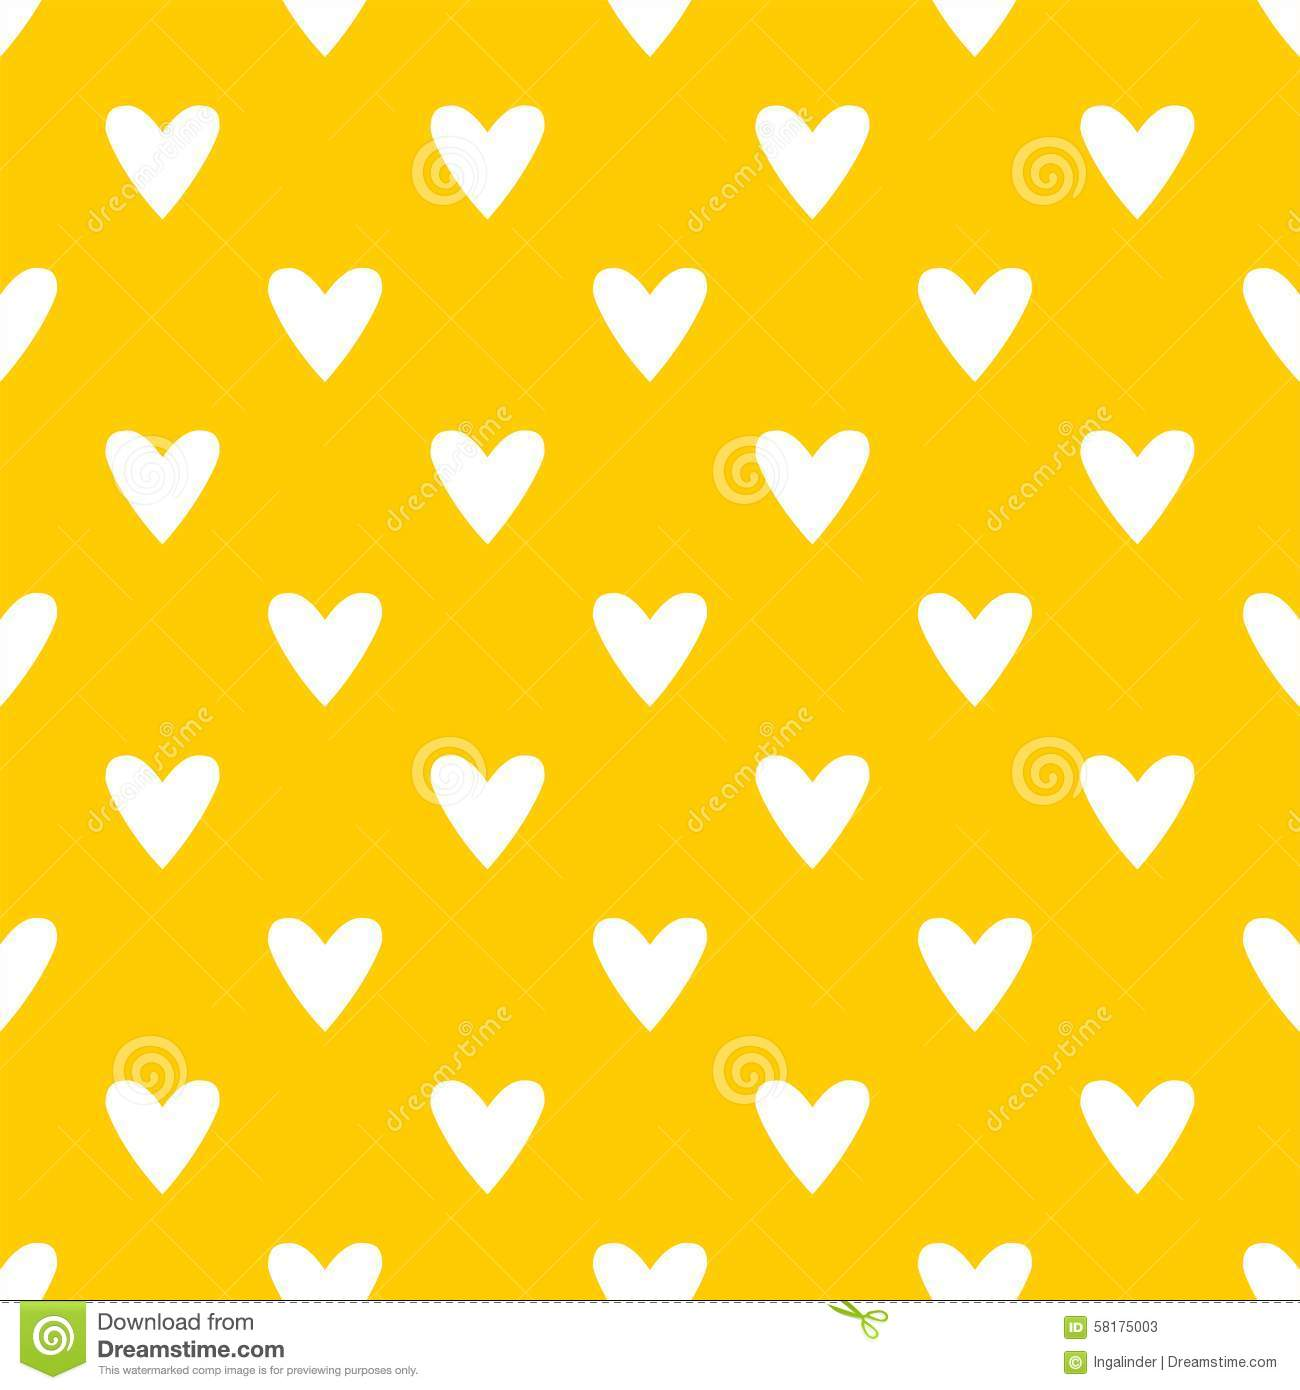 Tile Cute Vector Pattern With White Hearts On Yellow ...